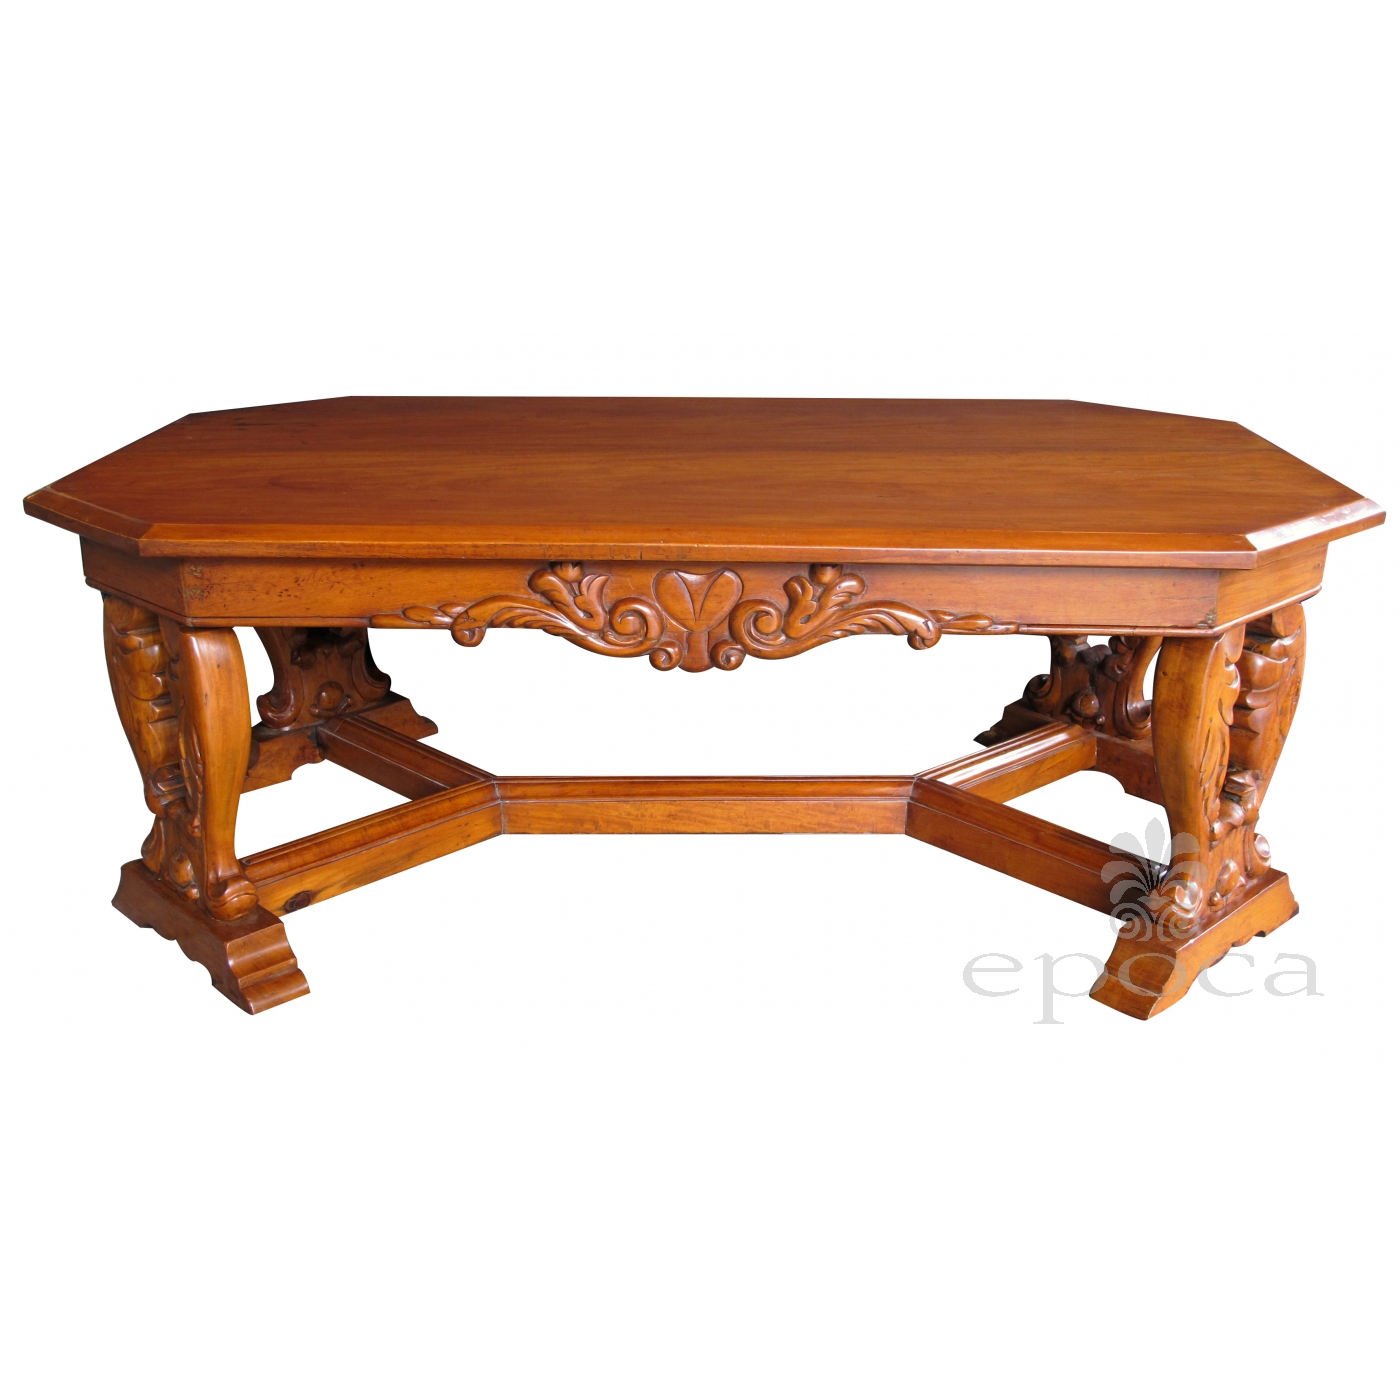 a handsome and boldly carved french baroque style cherrywood